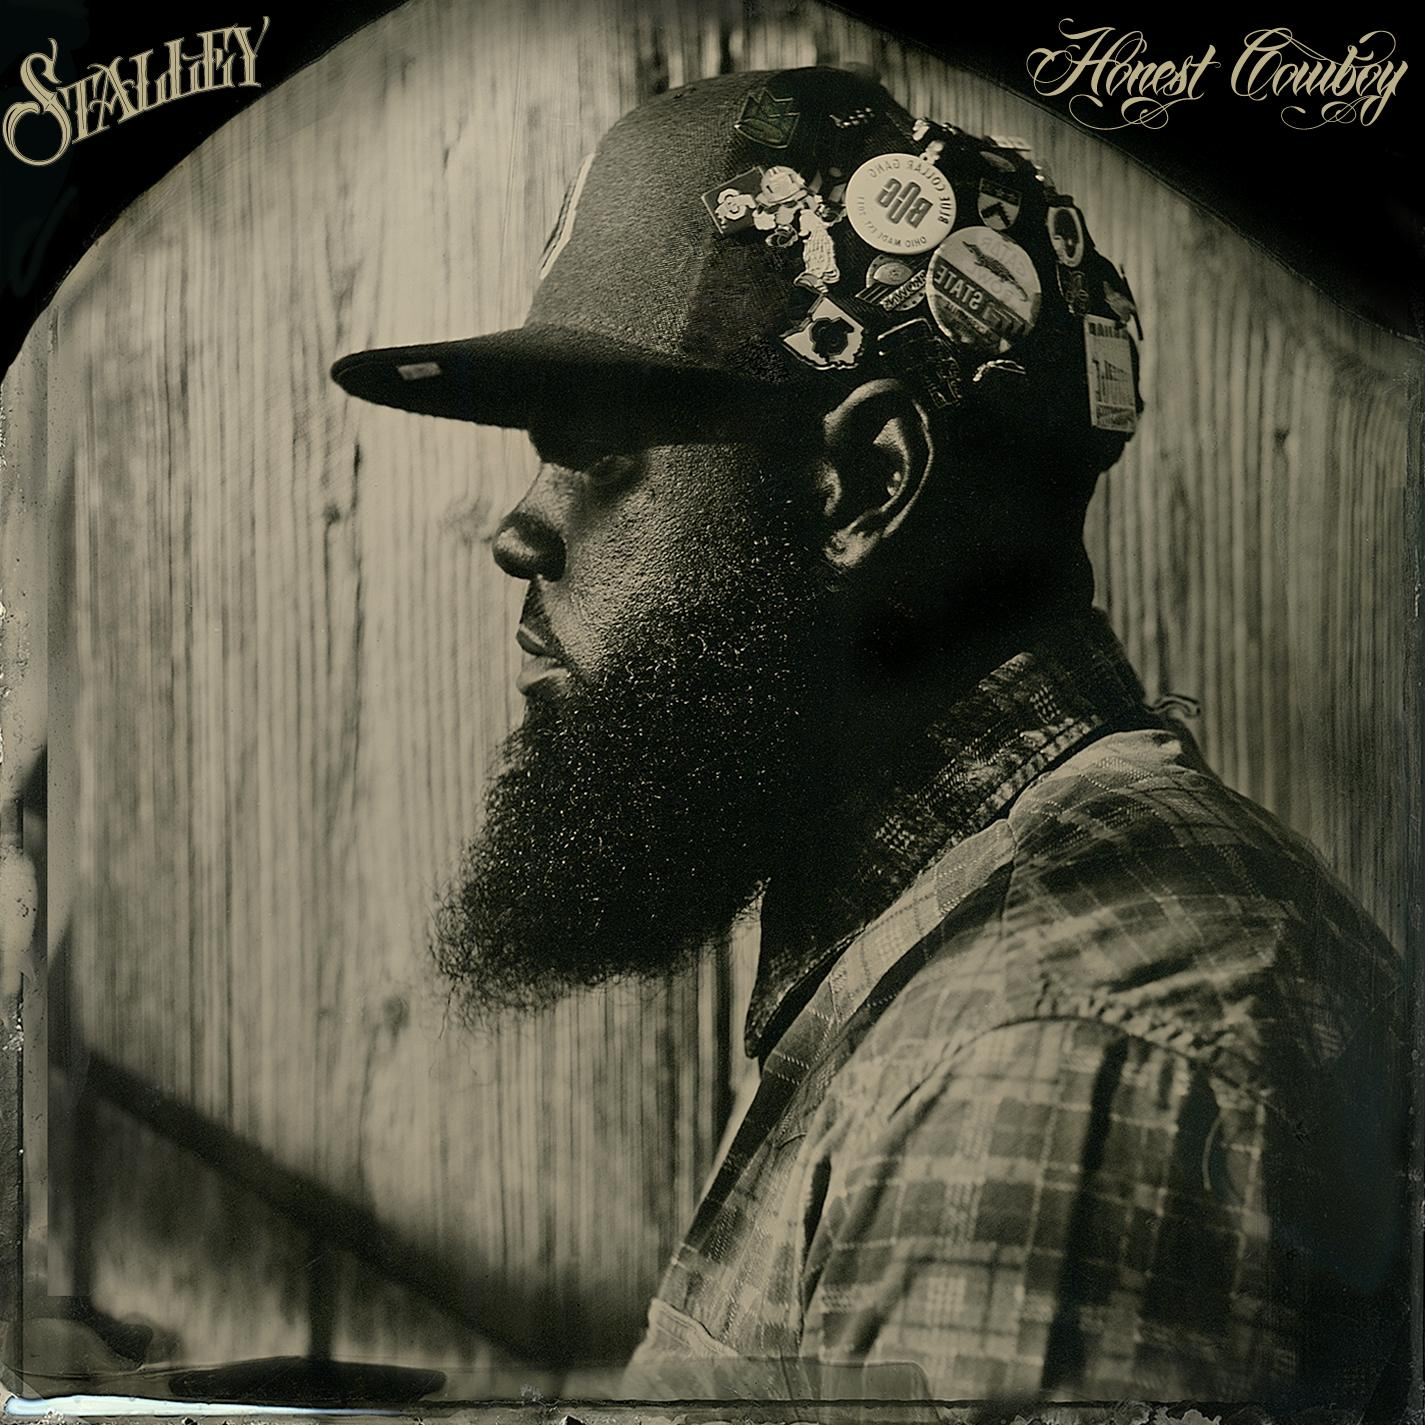 MMG Rapper Stalley to Release 'Honest Cowboy' EP; Out, 9/17